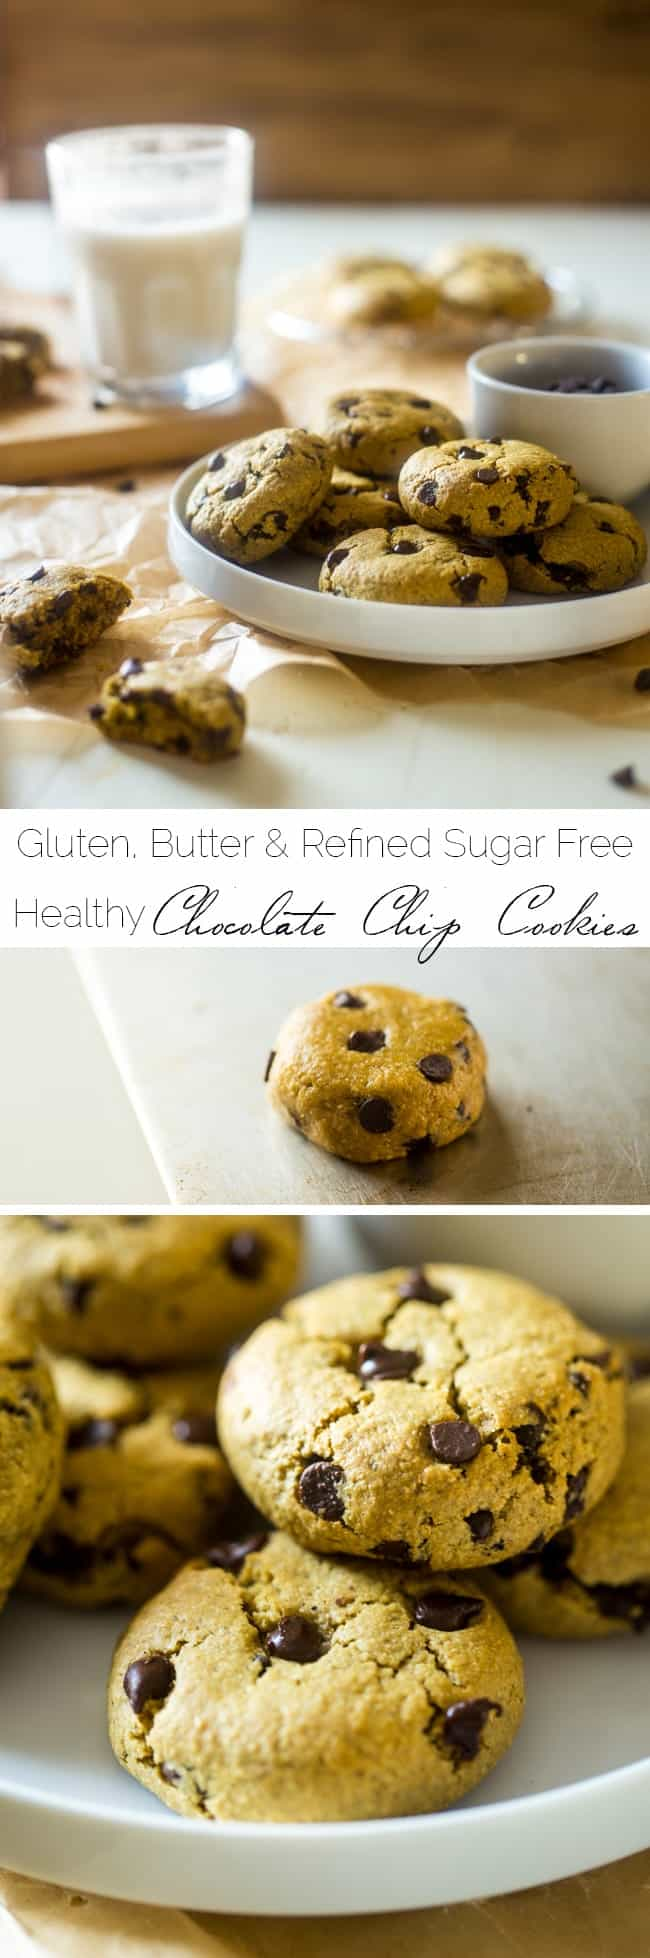 Healthy Gluten Free Chocolate Chip Cookies | Food Faith Fitness